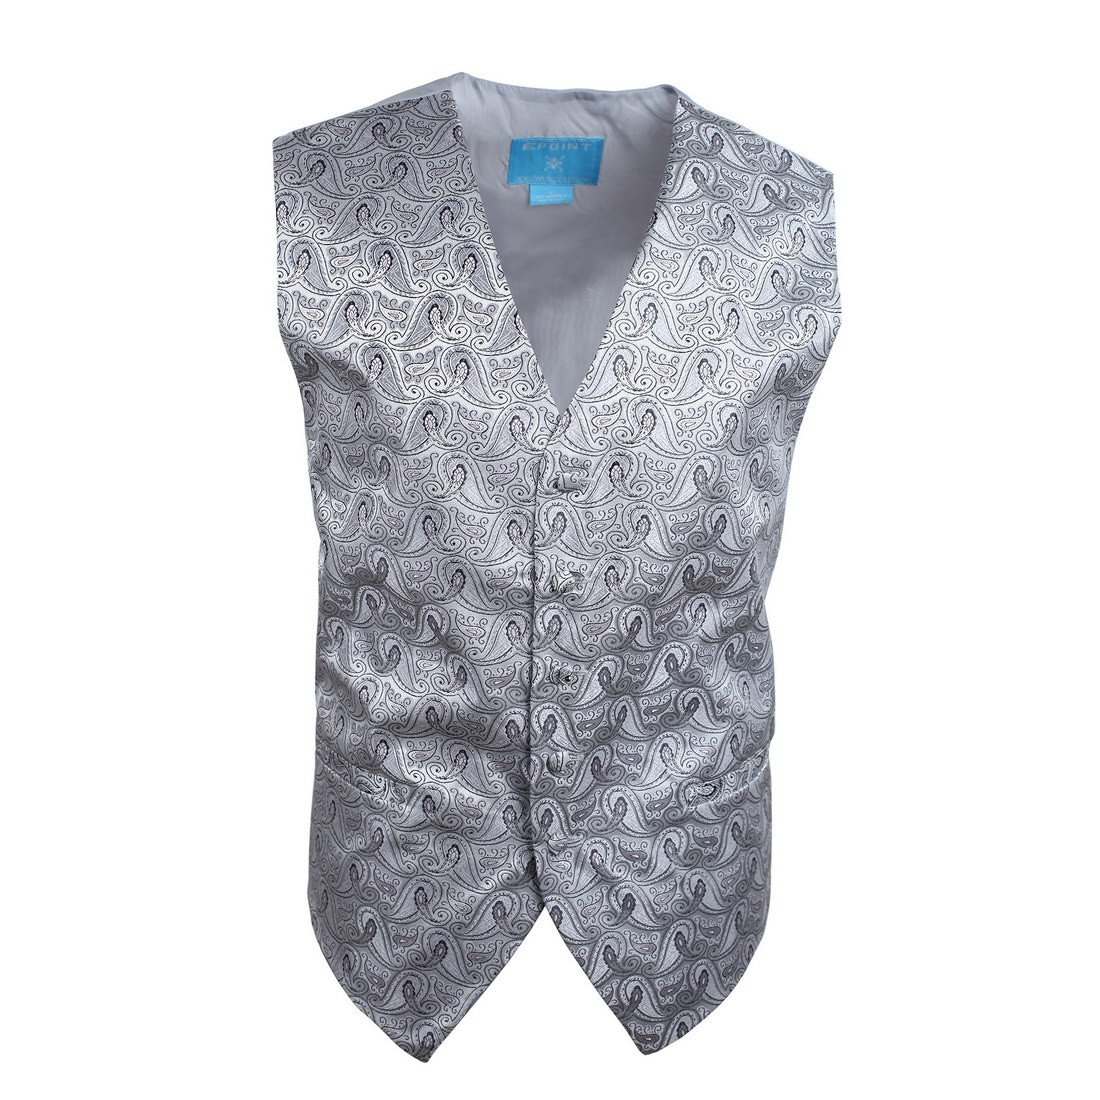 EGC1B08E-3XL Silver Patterned Handsome Store Waistcoat Woven Microfiber Dress Lawyers XXX-Large Vest By Epoint